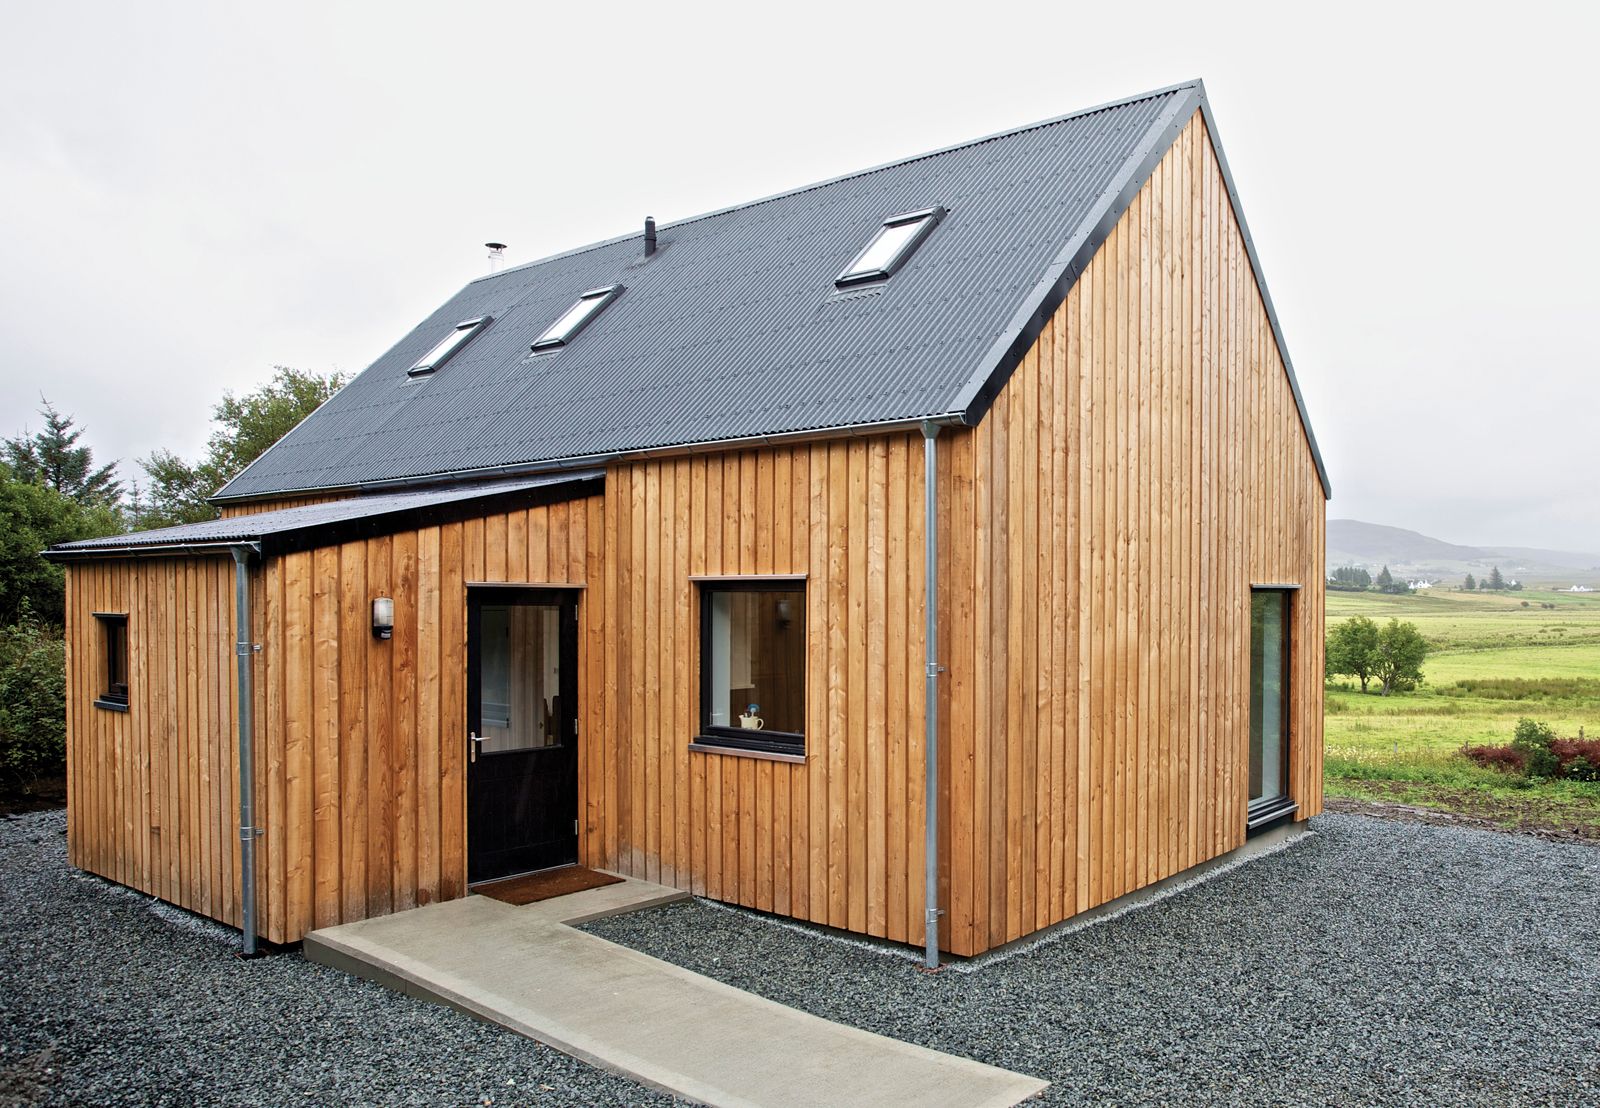 Modern wooden prefab home in Scotland